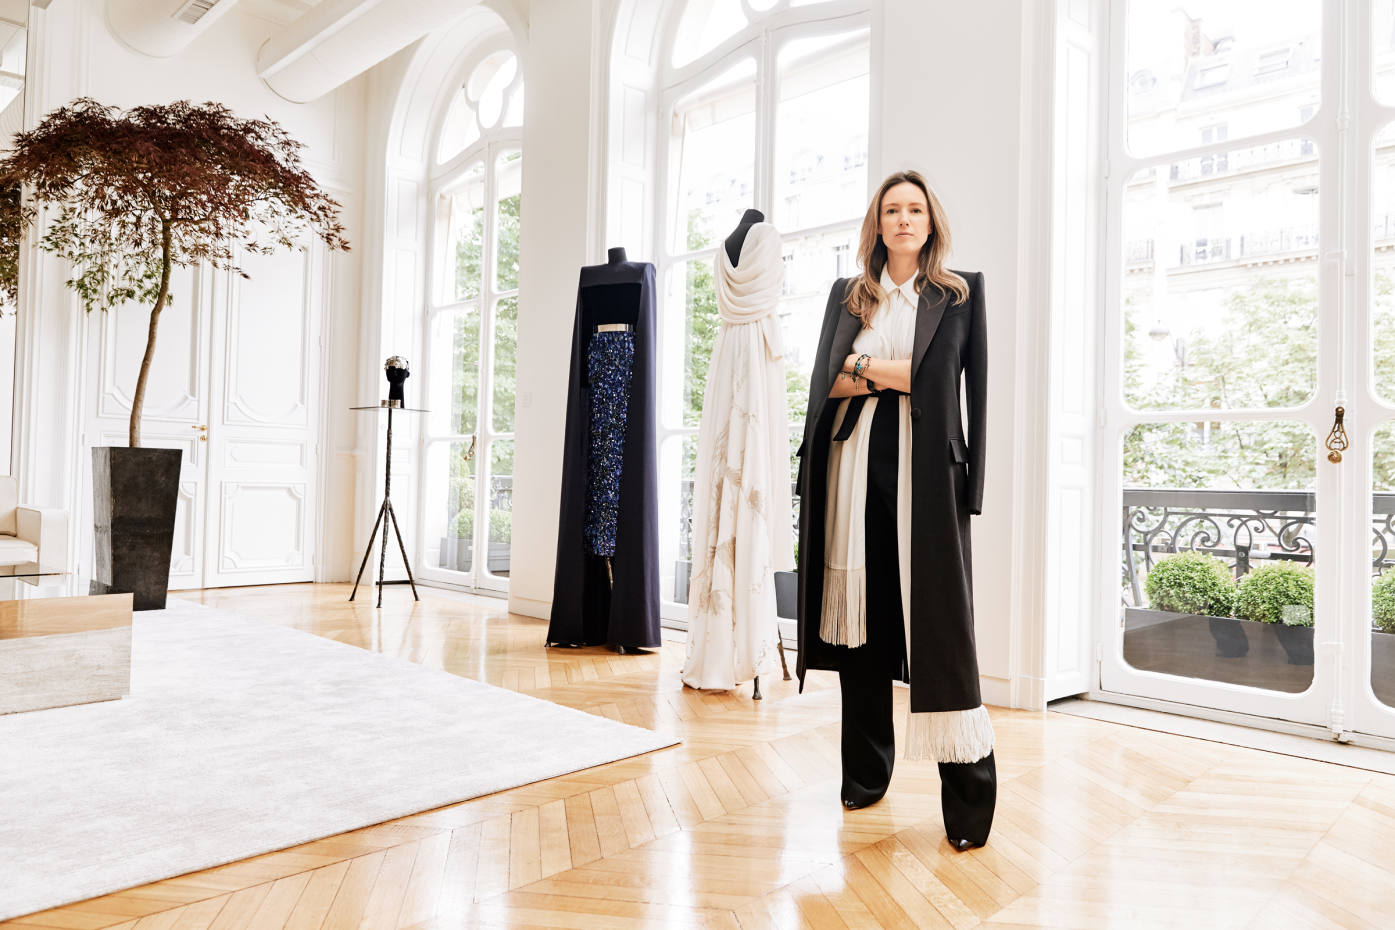 d0cf3cbe707ca Givenchy creative director Clare Waight Keller at the brand s Parisian HQ